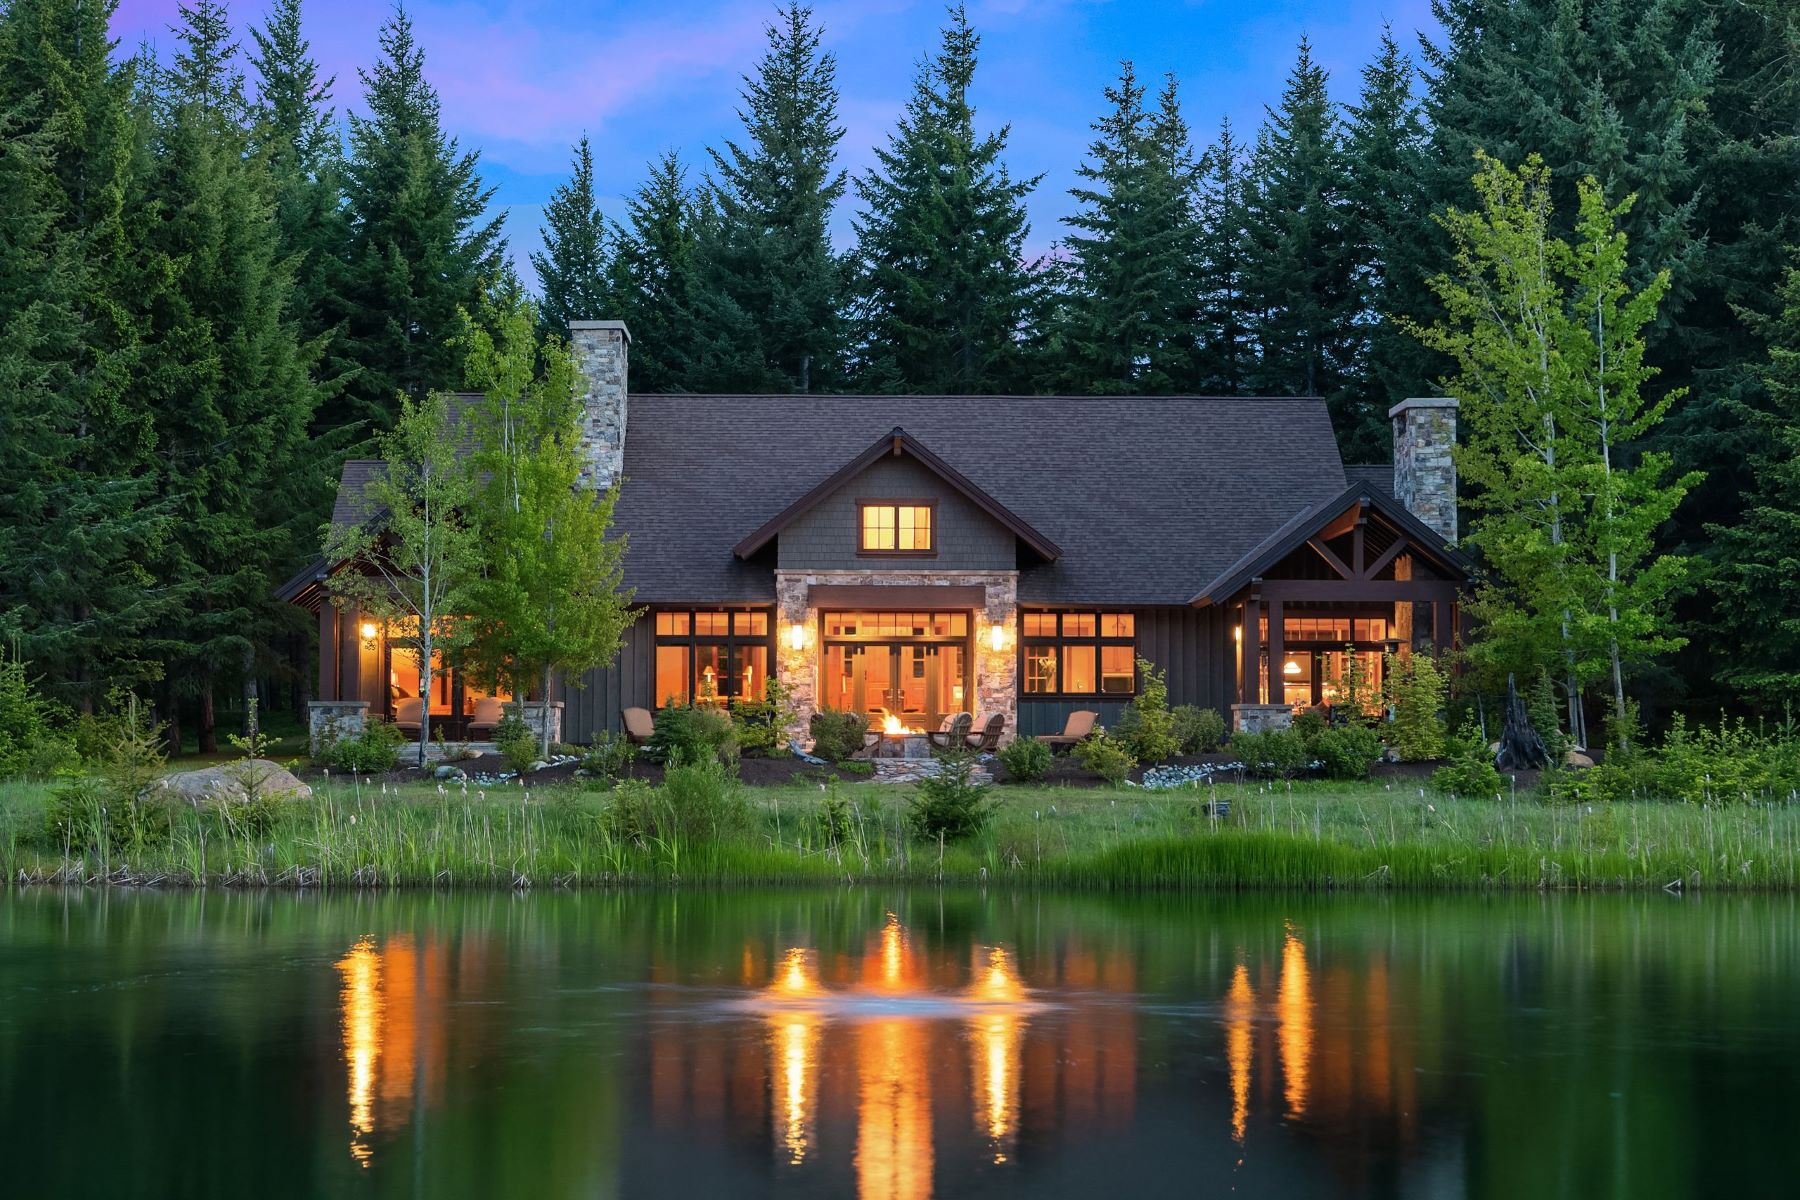 Single Family Homes for Sale at 171 Gold Fountain Lane, Cle Elum, WA 98922 171 Gold Fountain Lane Cle Elum, Washington 98922 United States